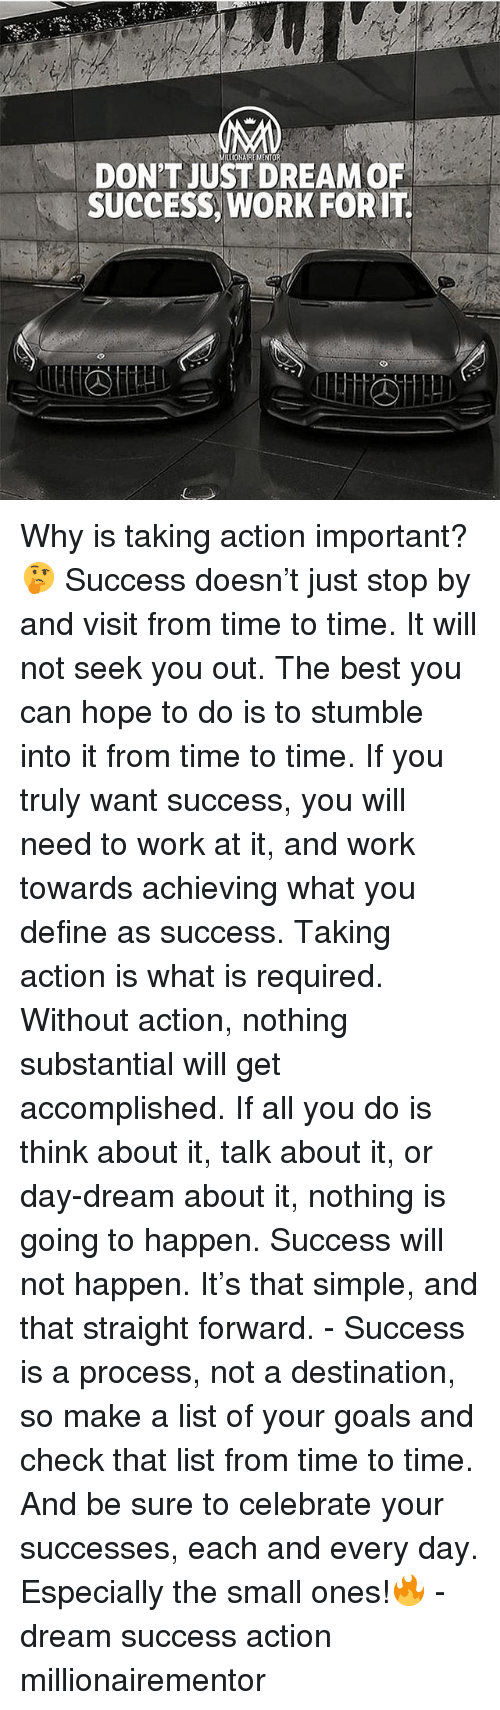 Goals, Memes, and Work: DON'T JUST DREAM OF  SUCCESS, WORK FORIT Why is taking action important? 🤔 Success doesn't just stop by and visit from time to time. It will not seek you out. The best you can hope to do is to stumble into it from time to time. If you truly want success, you will need to work at it, and work towards achieving what you define as success. Taking action is what is required. Without action, nothing substantial will get accomplished. If all you do is think about it, talk about it, or day-dream about it, nothing is going to happen. Success will not happen. It's that simple, and that straight forward. - Success is a process, not a destination, so make a list of your goals and check that list from time to time. And be sure to celebrate your successes, each and every day. Especially the small ones!🔥 - dream success action millionairementor